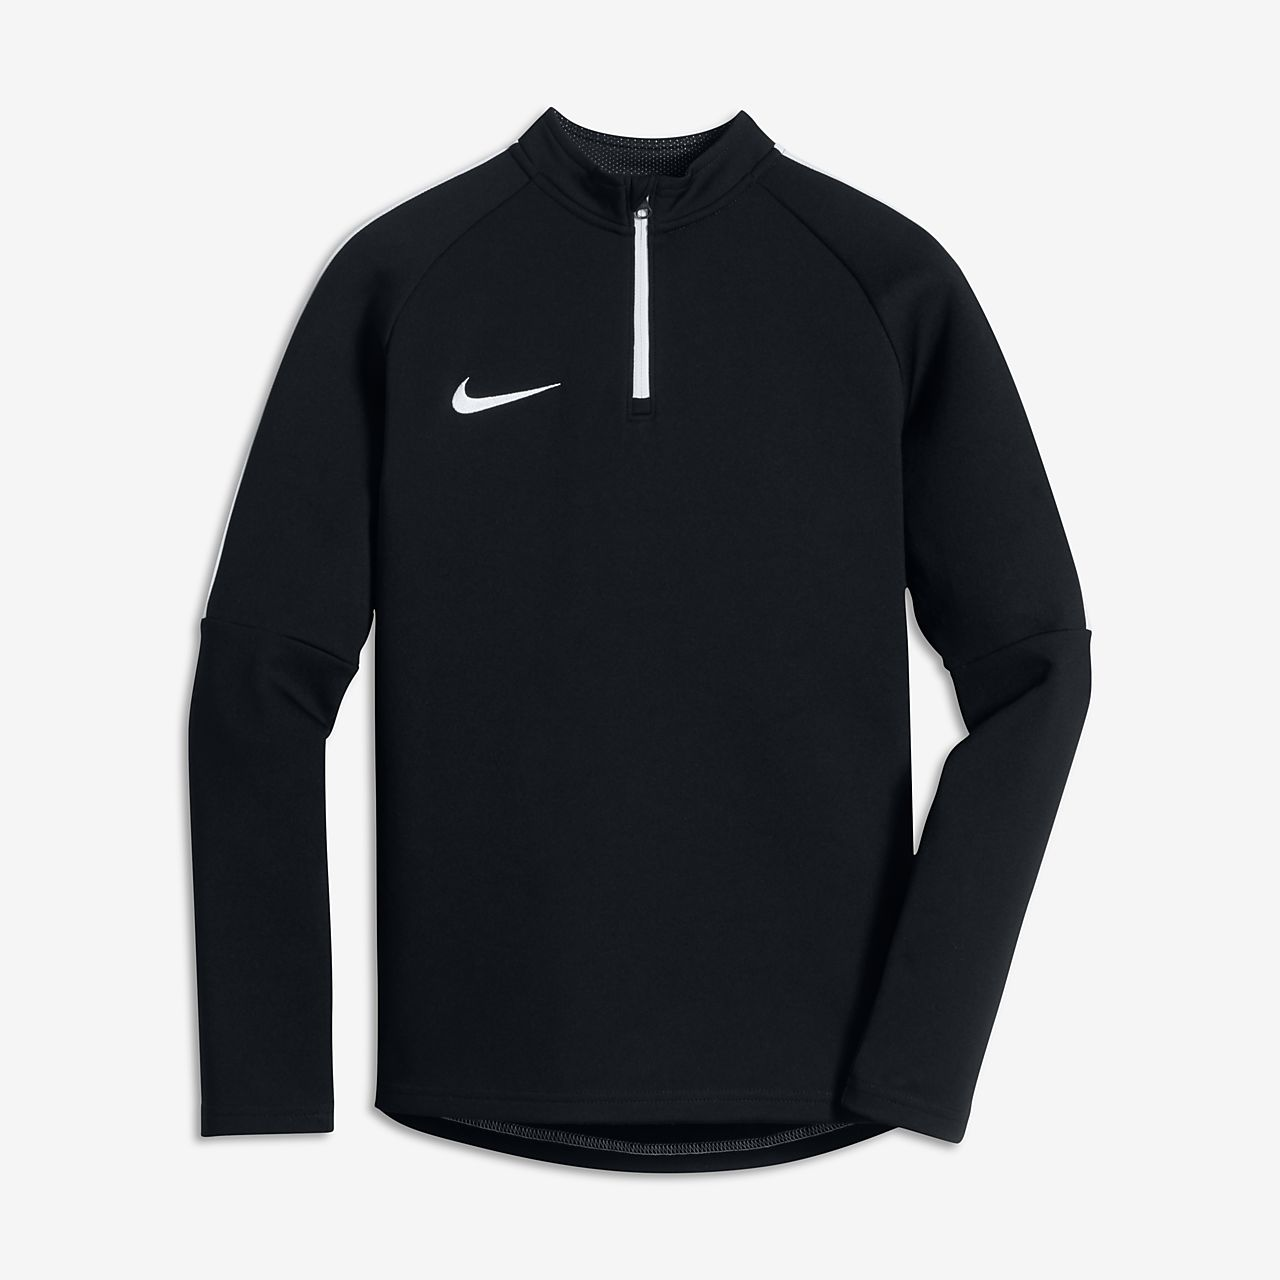 Nike Shield Strike Drill Big Kids' Soccer Tops Black/White